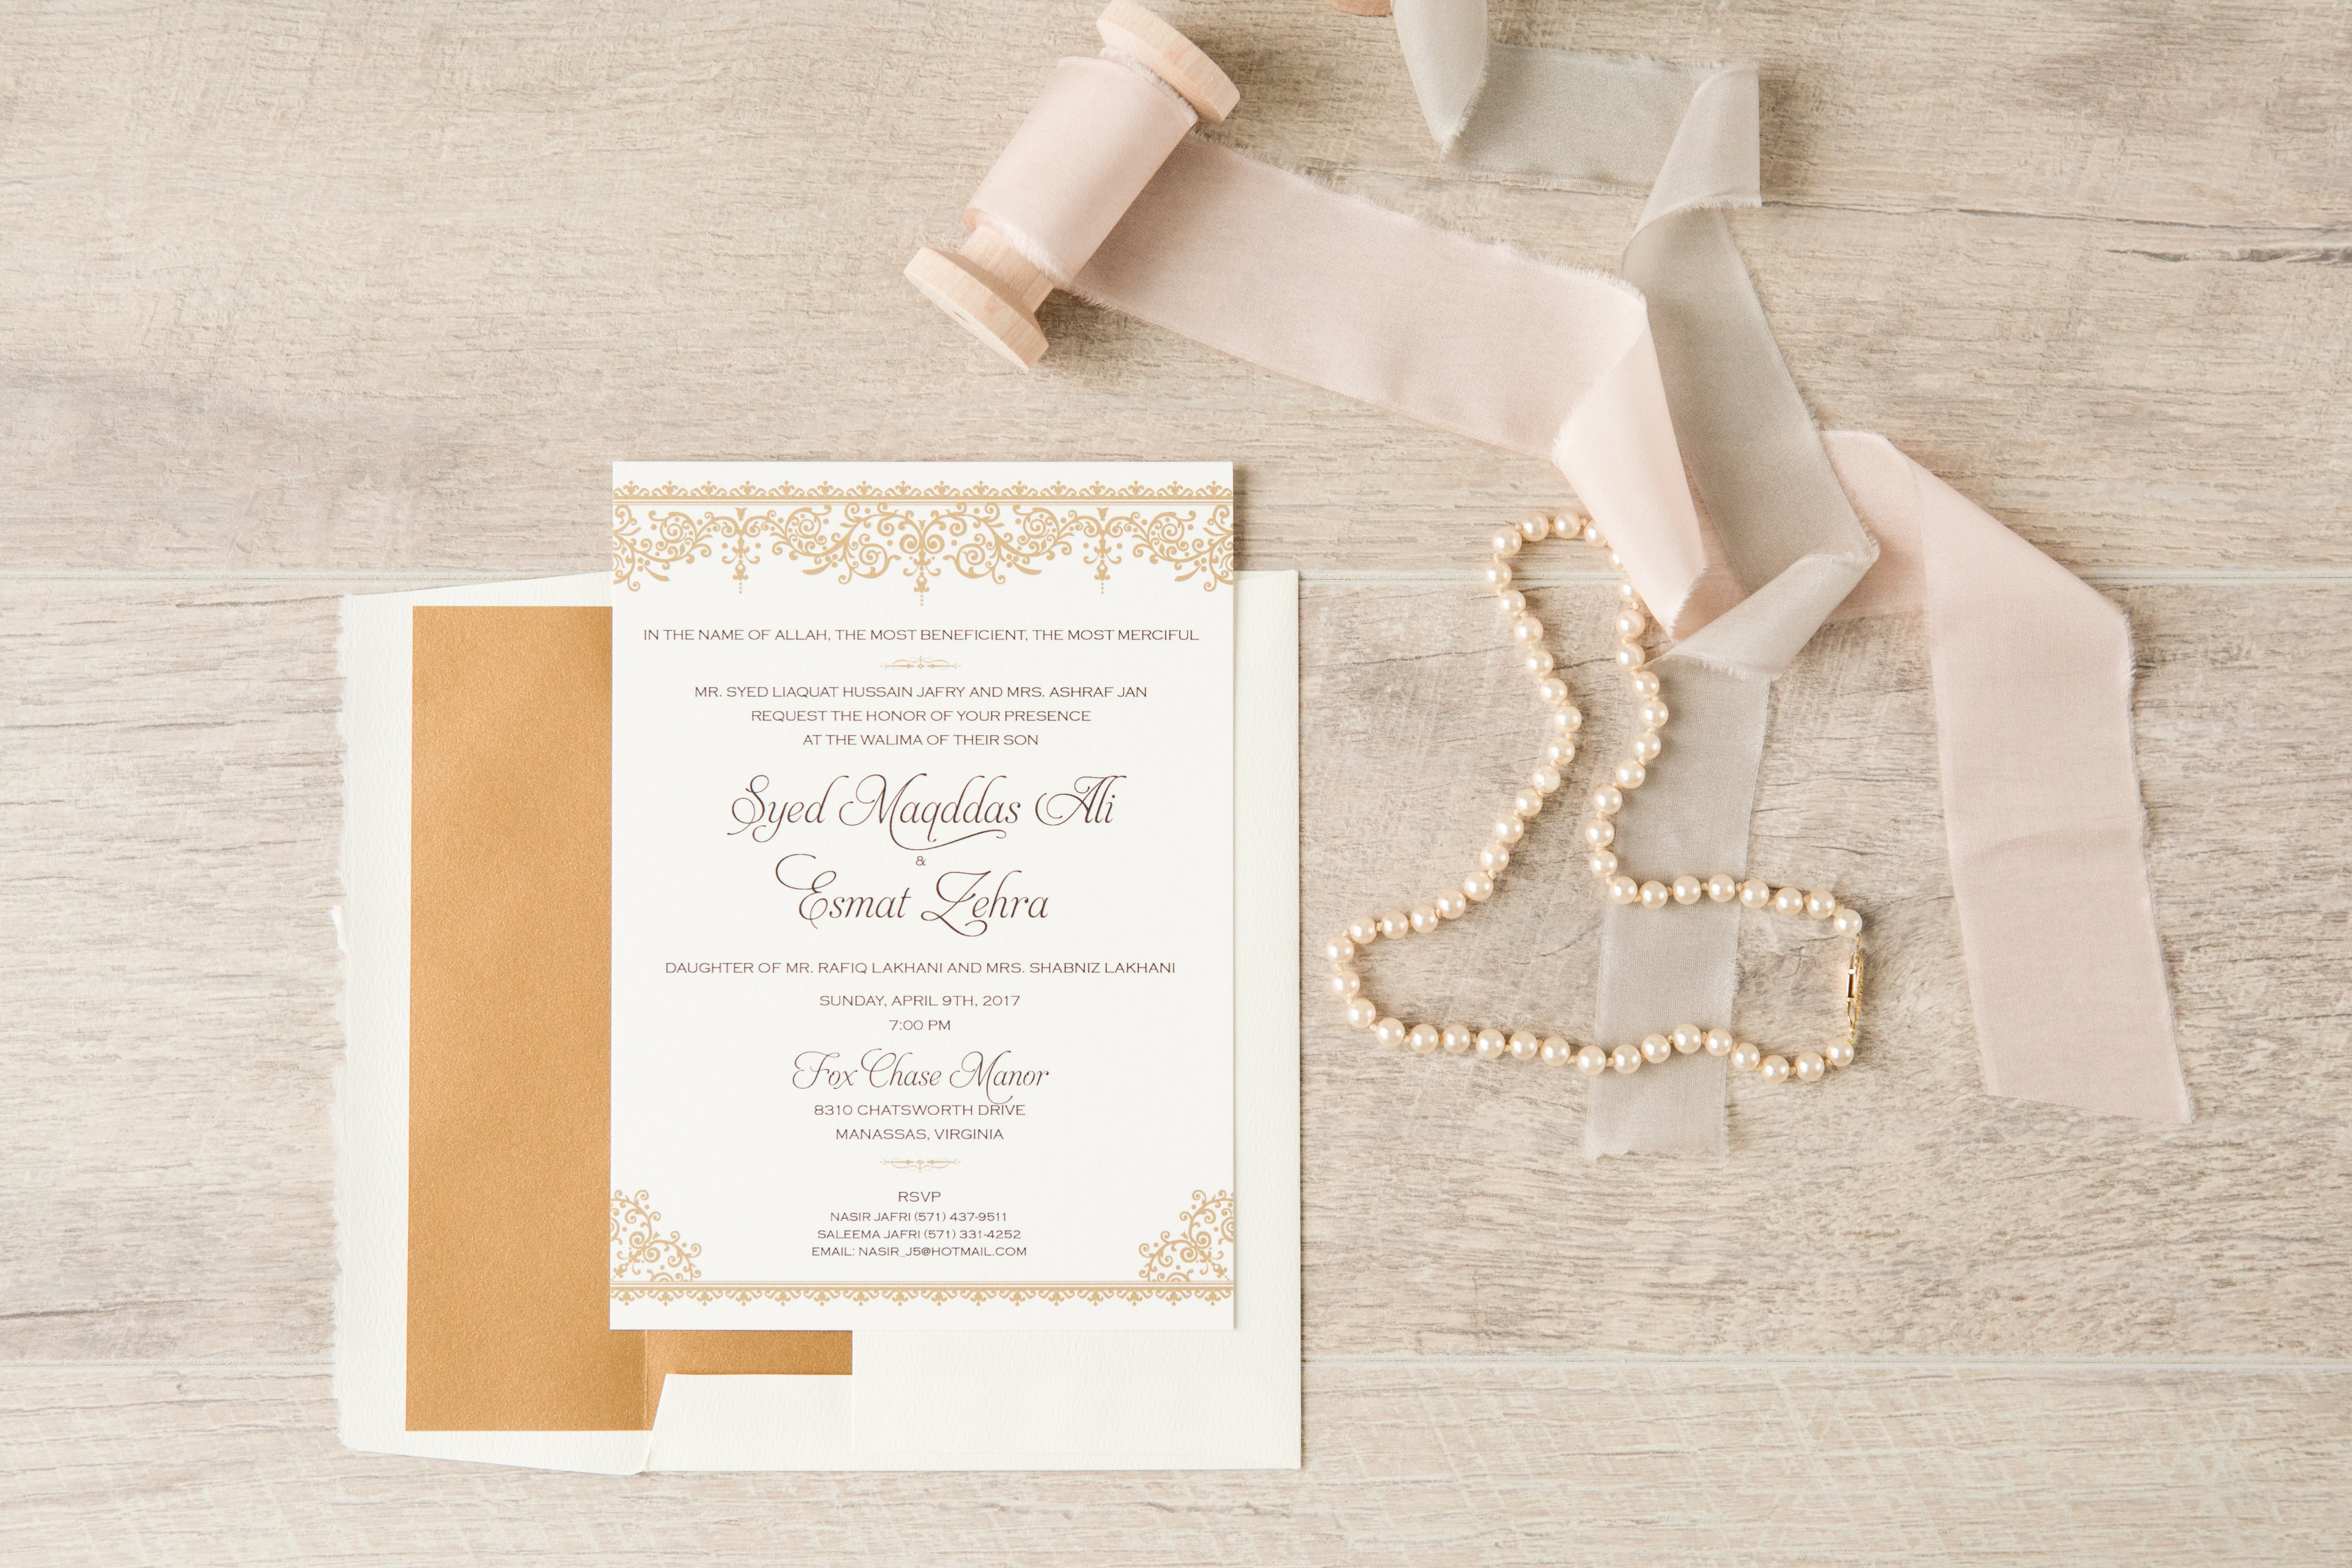 Elegant classic elements, ornate borders, metallic gold envelope liner.  Wedding invitation, walma invitation.